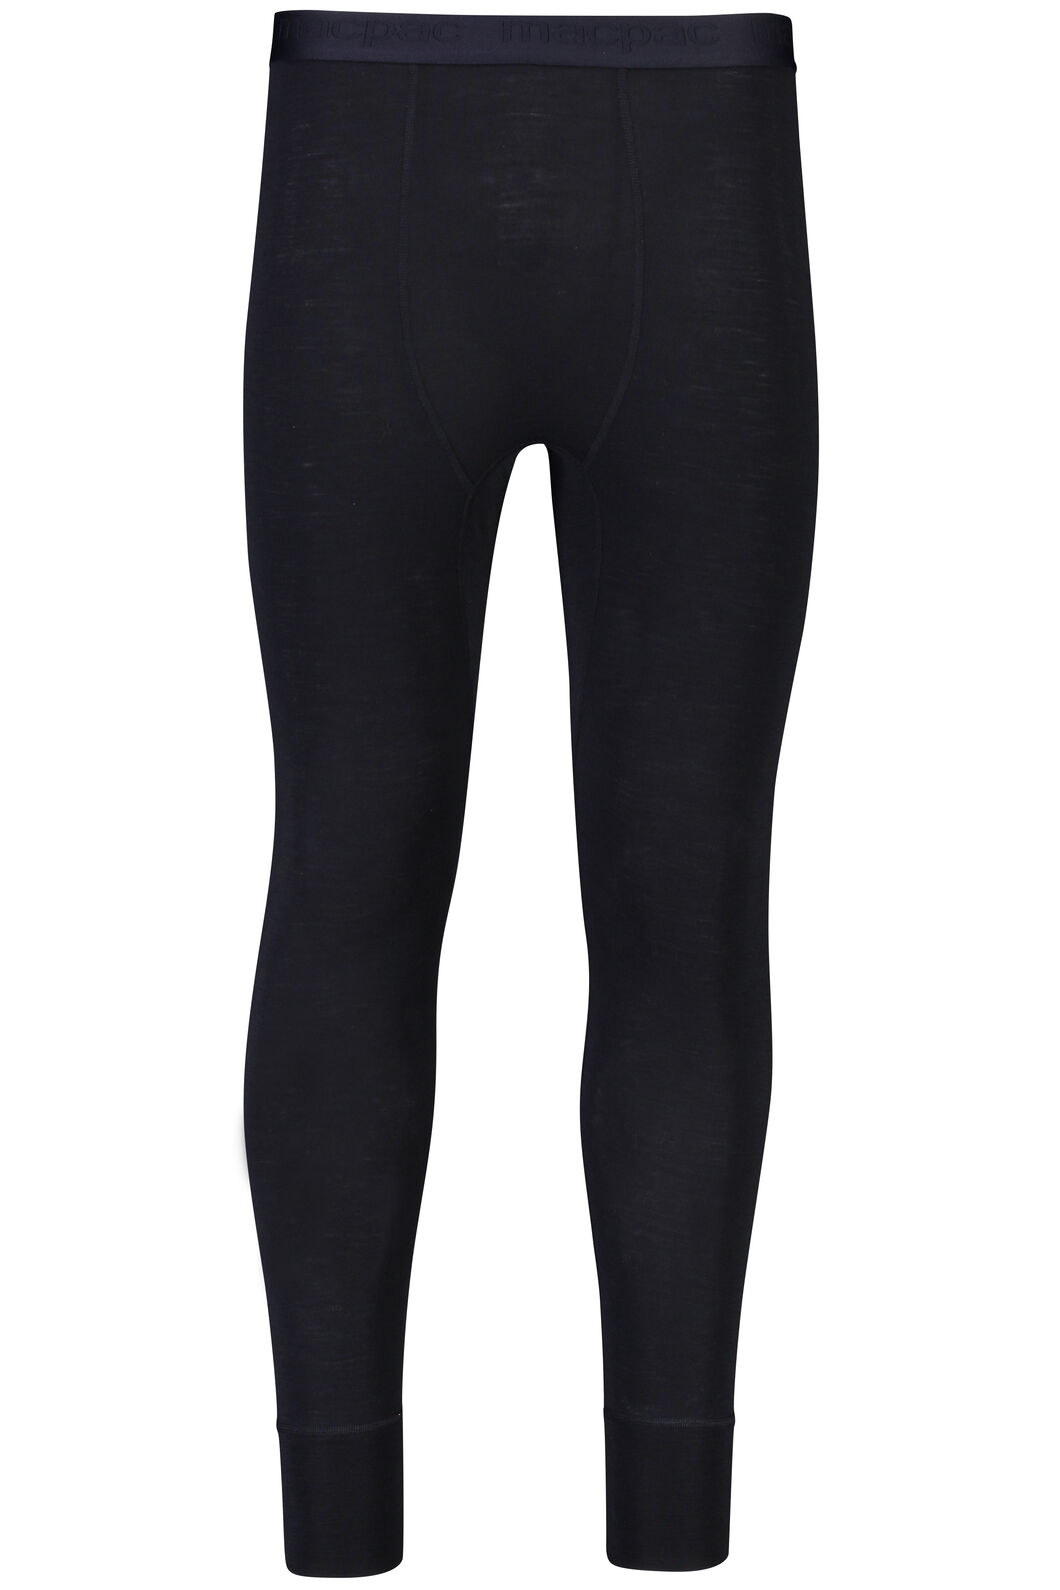 Macpac 220 Merino Long Johns — Men's, Black, hi-res